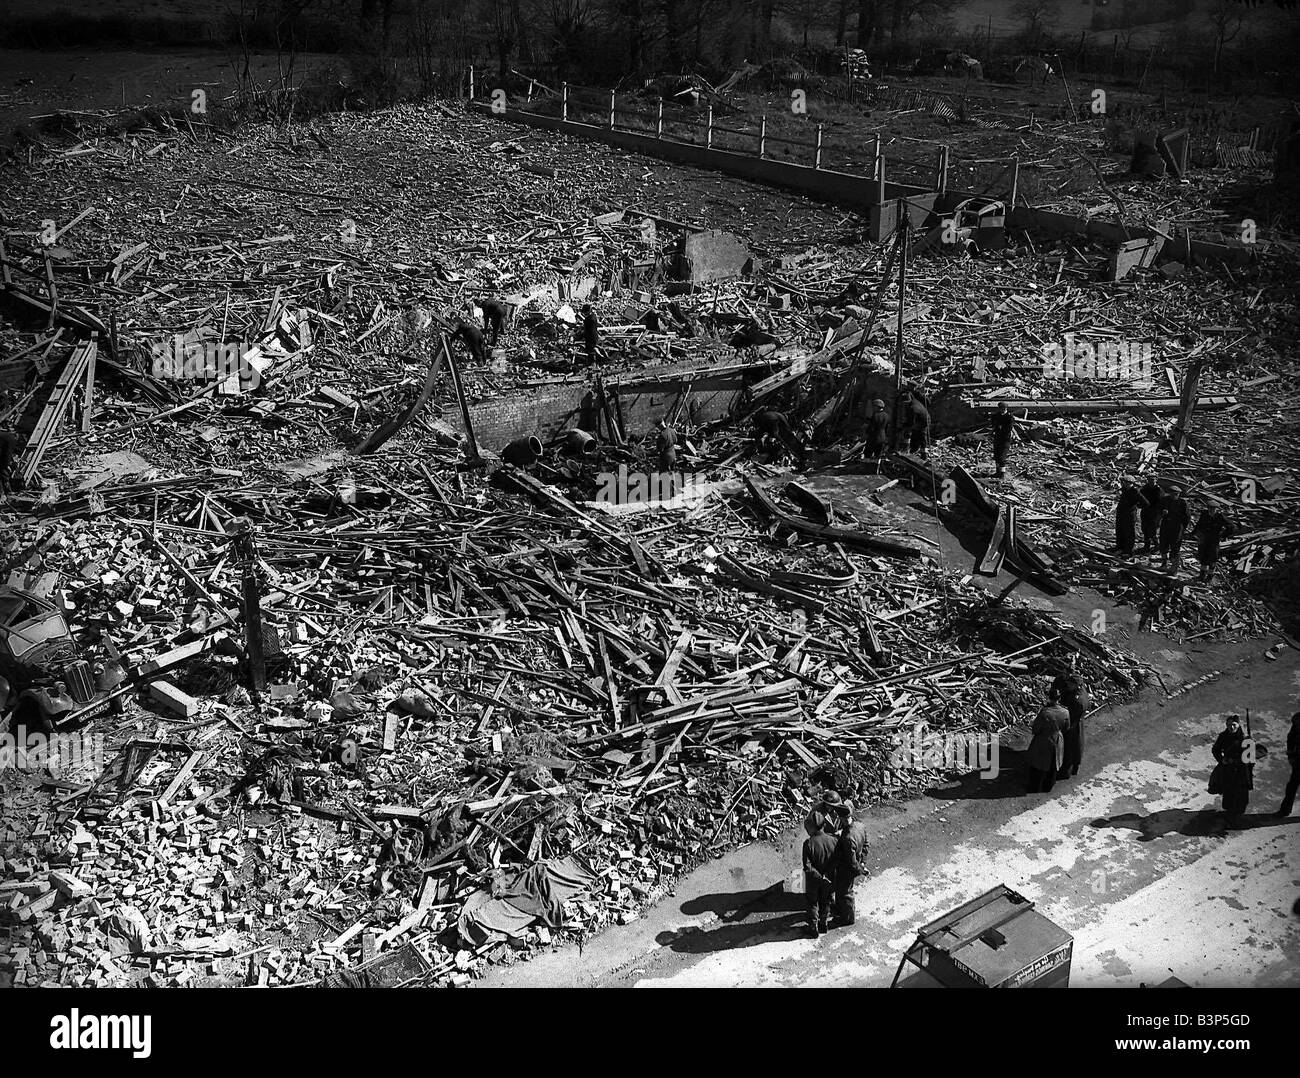 WW2 Bomb Damage at Chigwell absolute destruction where buildings used to stand the site is now a pile of rubble - Stock Image